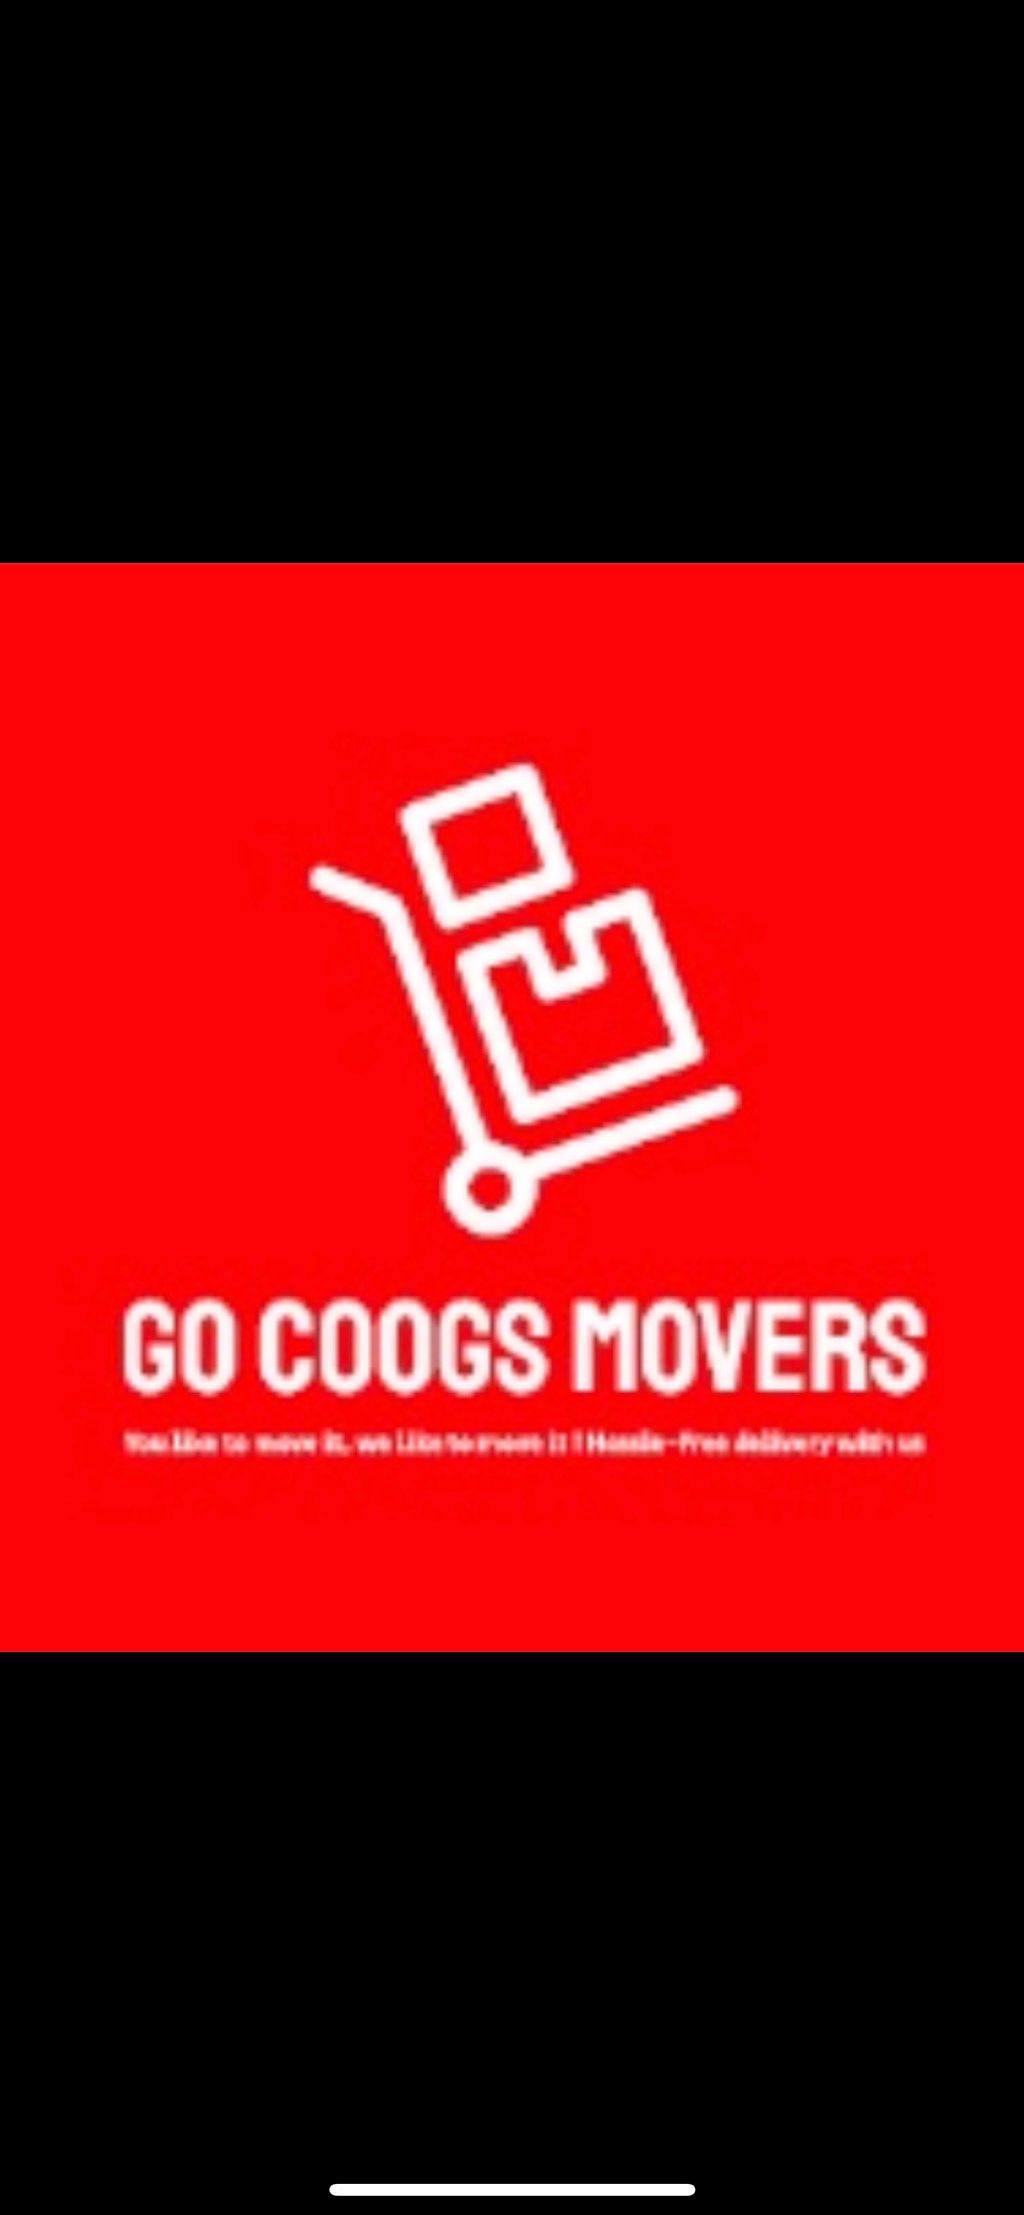 Houston Coogs Movers and Logistics